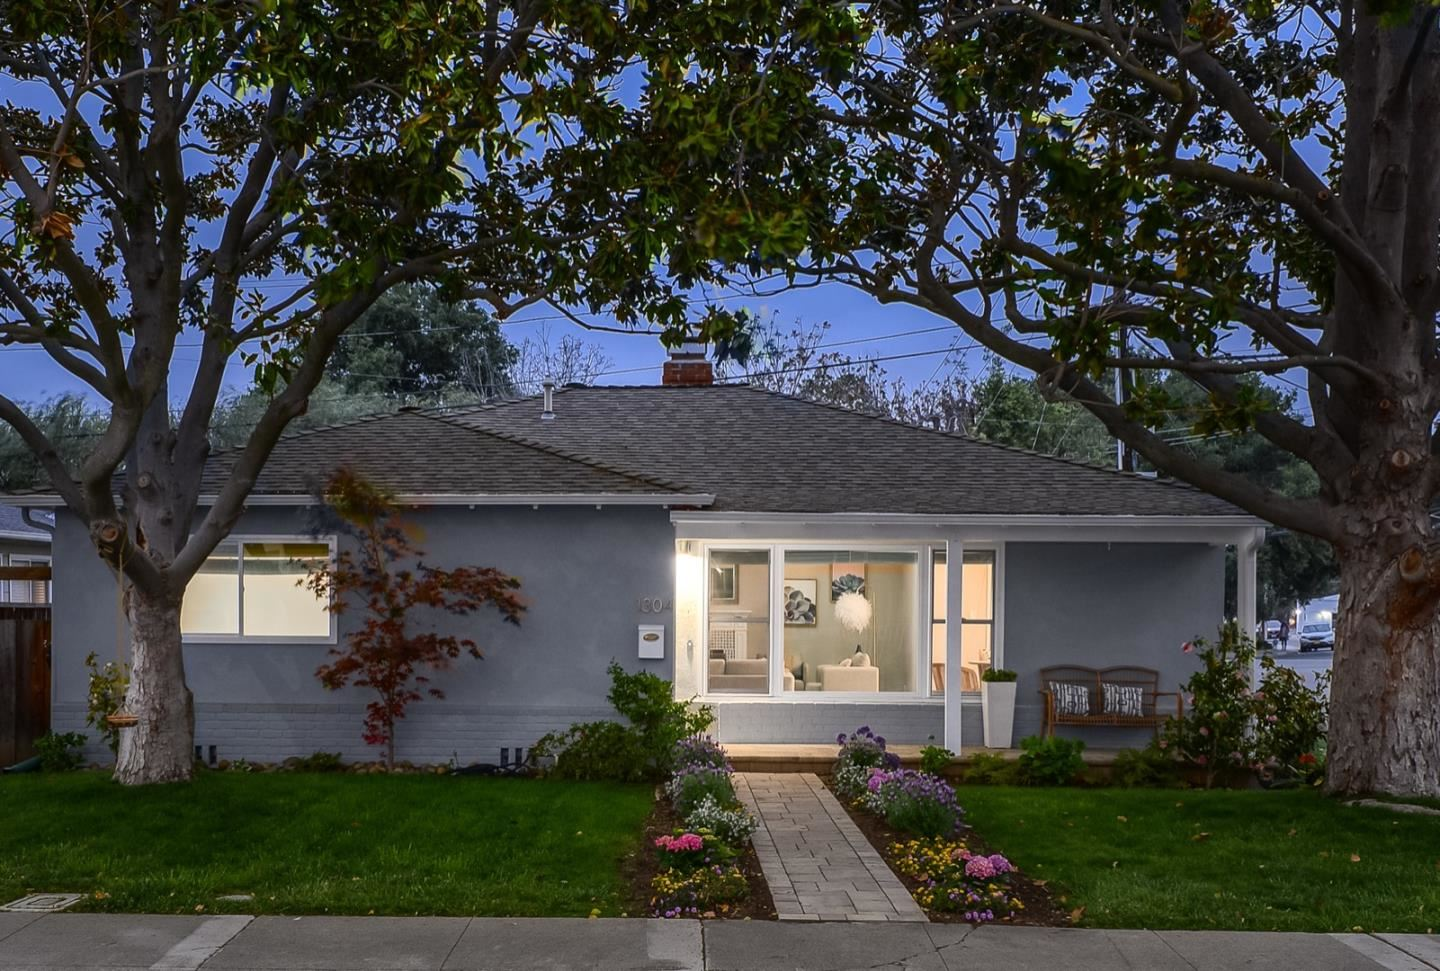 Photo for 1304 Todd Street, MOUNTAIN VIEW, CA 94040 (MLS # ML81840810)